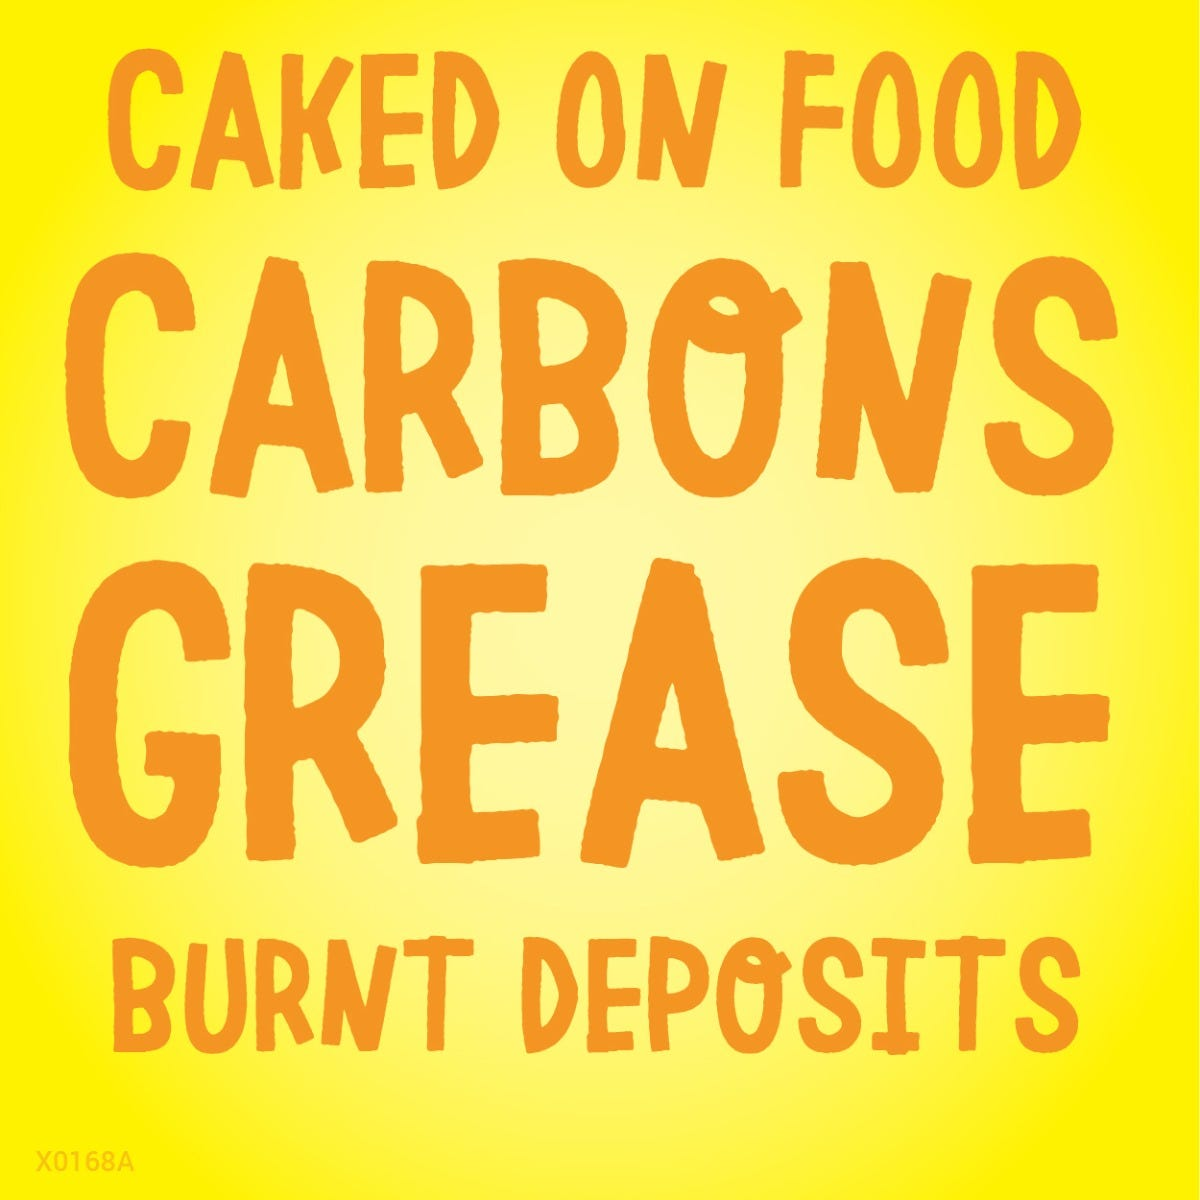 Works on baked-on food, carbons and grease